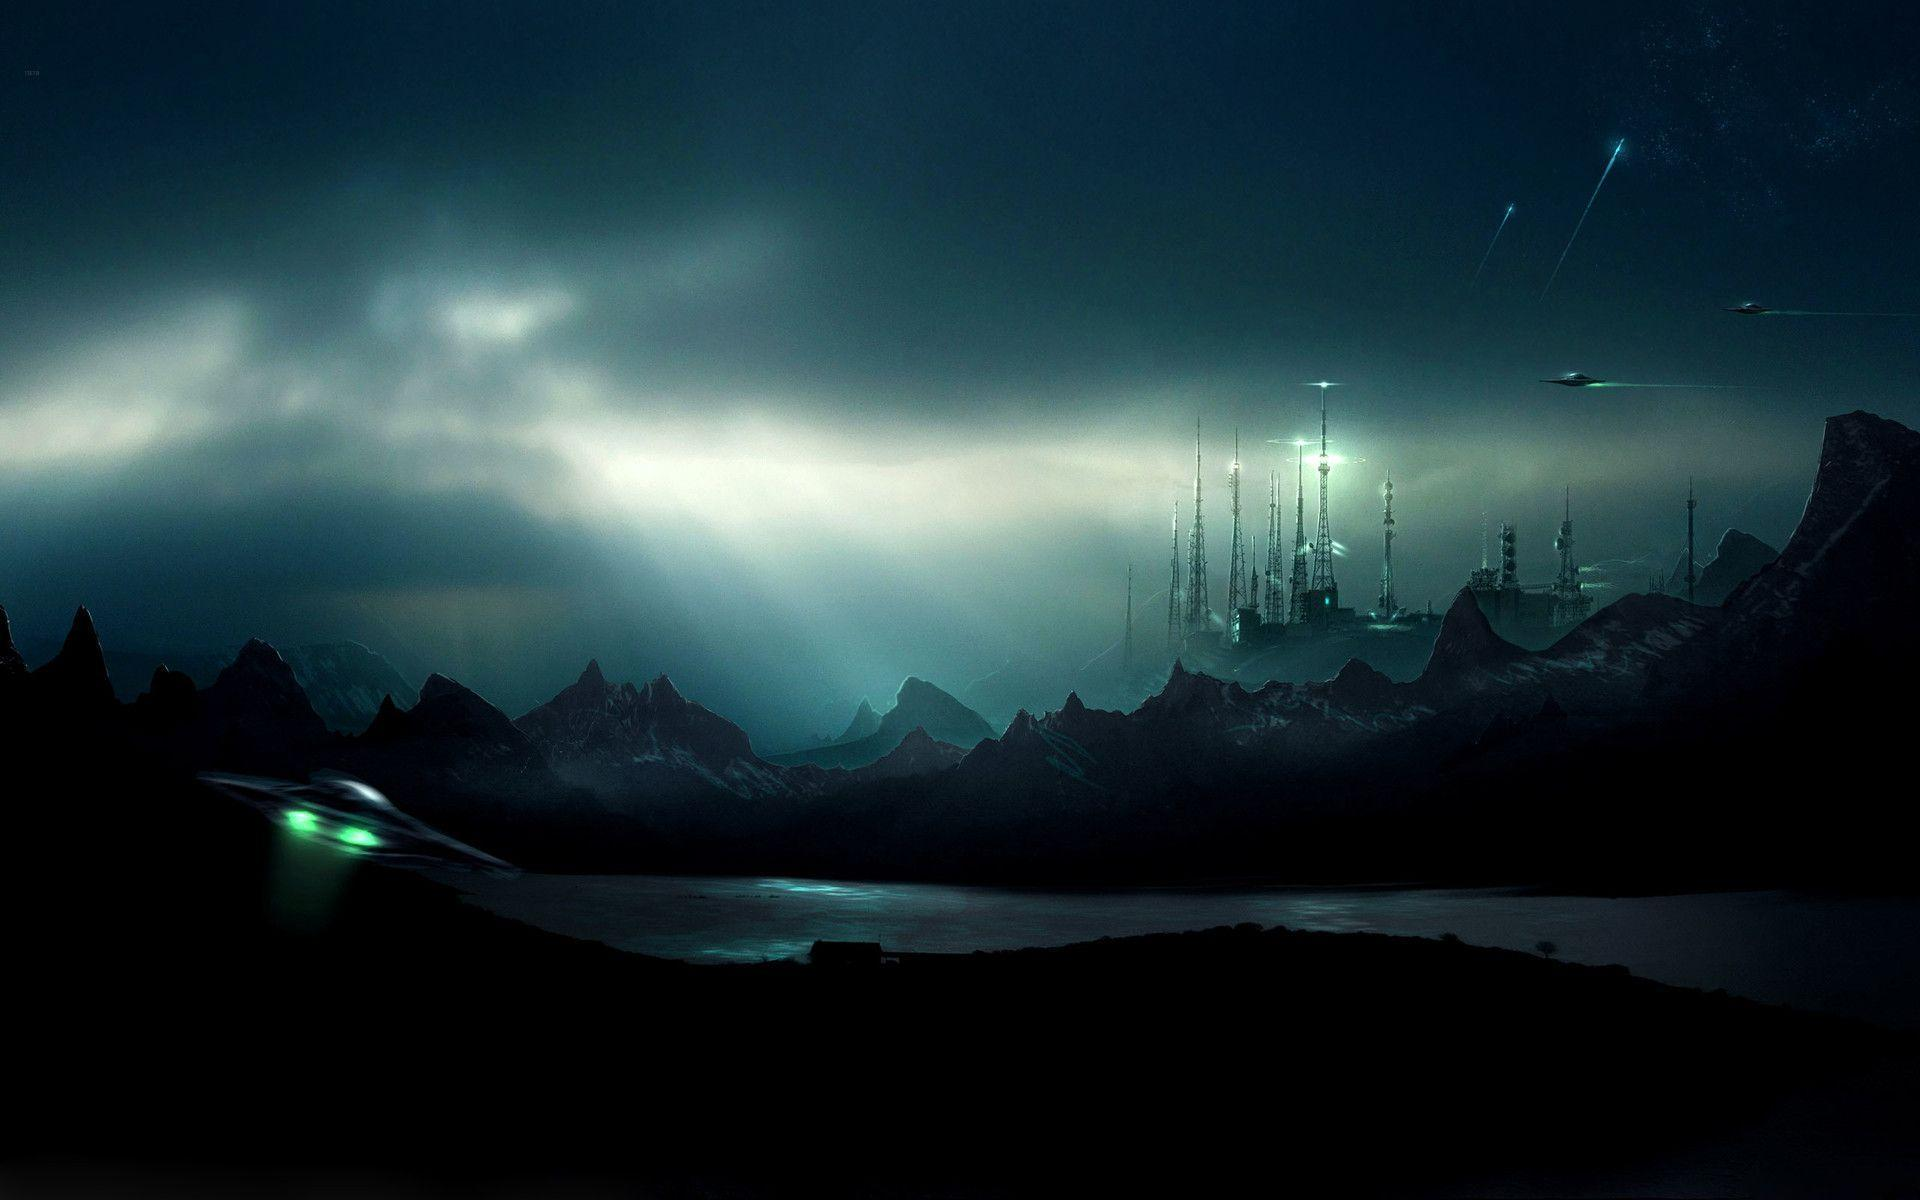 sci fi backgrounds - photo #8